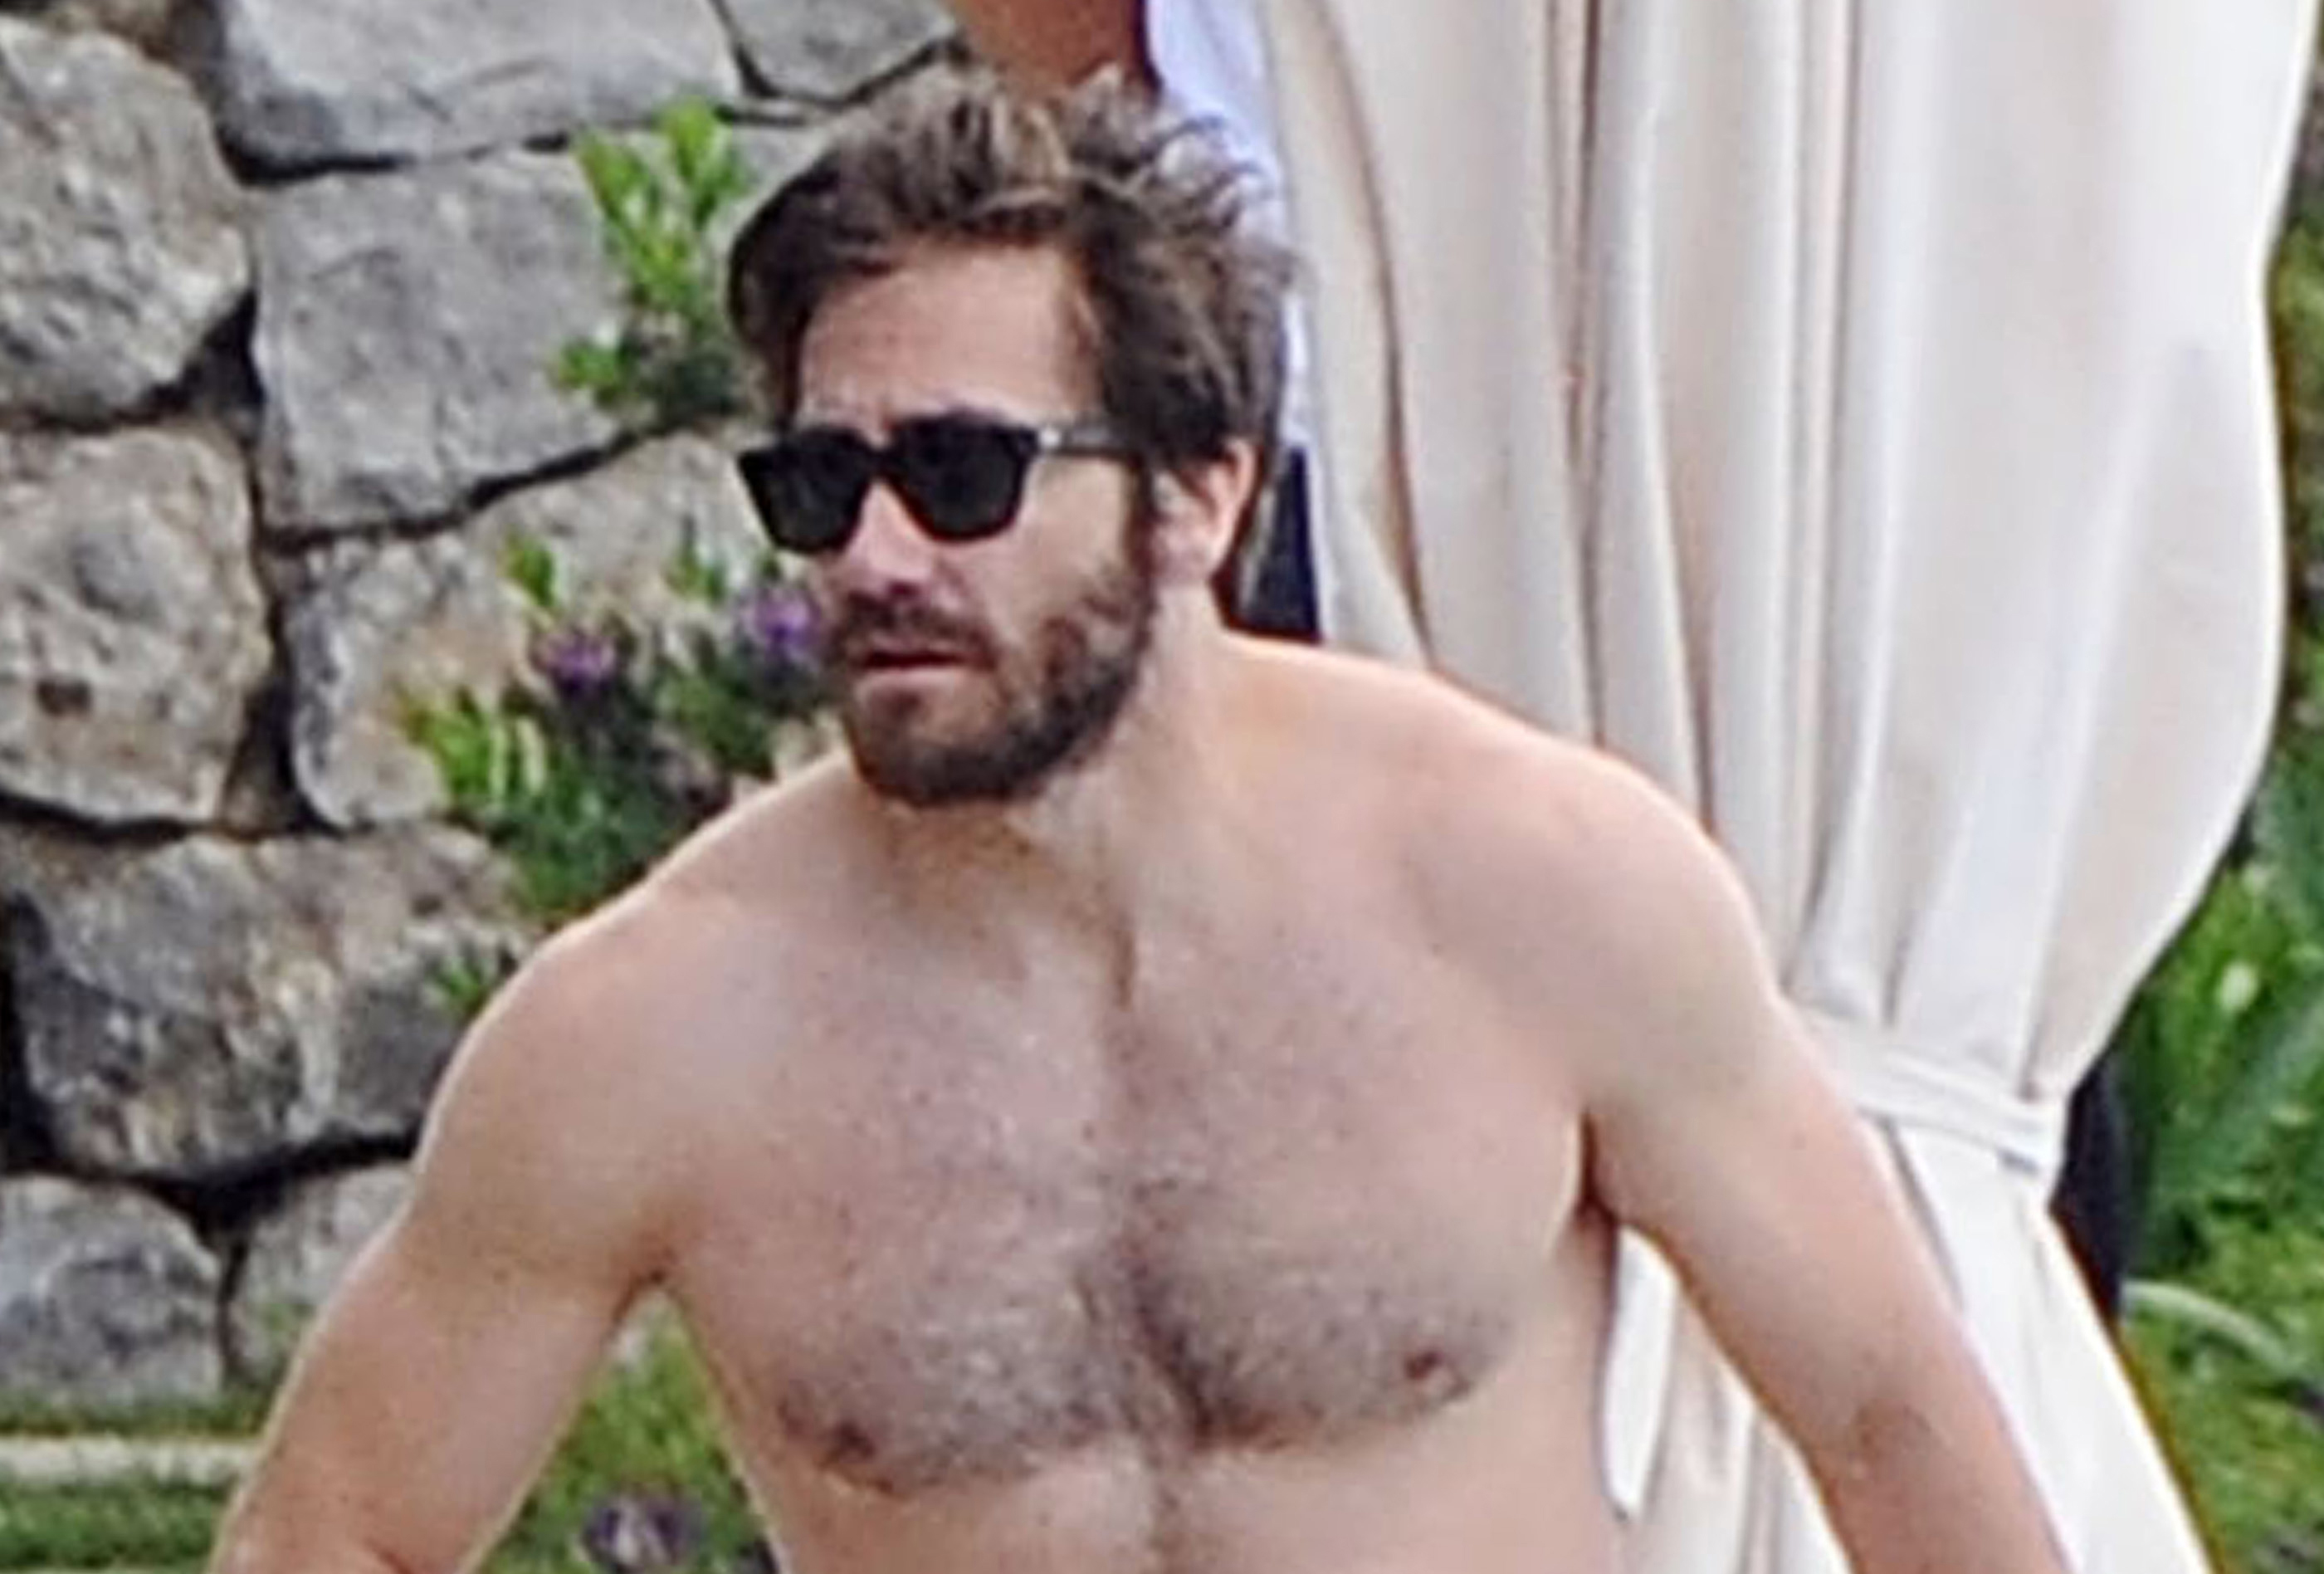 Jake Gyllenhaal Goes Shirtless During Italy Vacation With Greta Caruso ... Jake Gyllenhaal